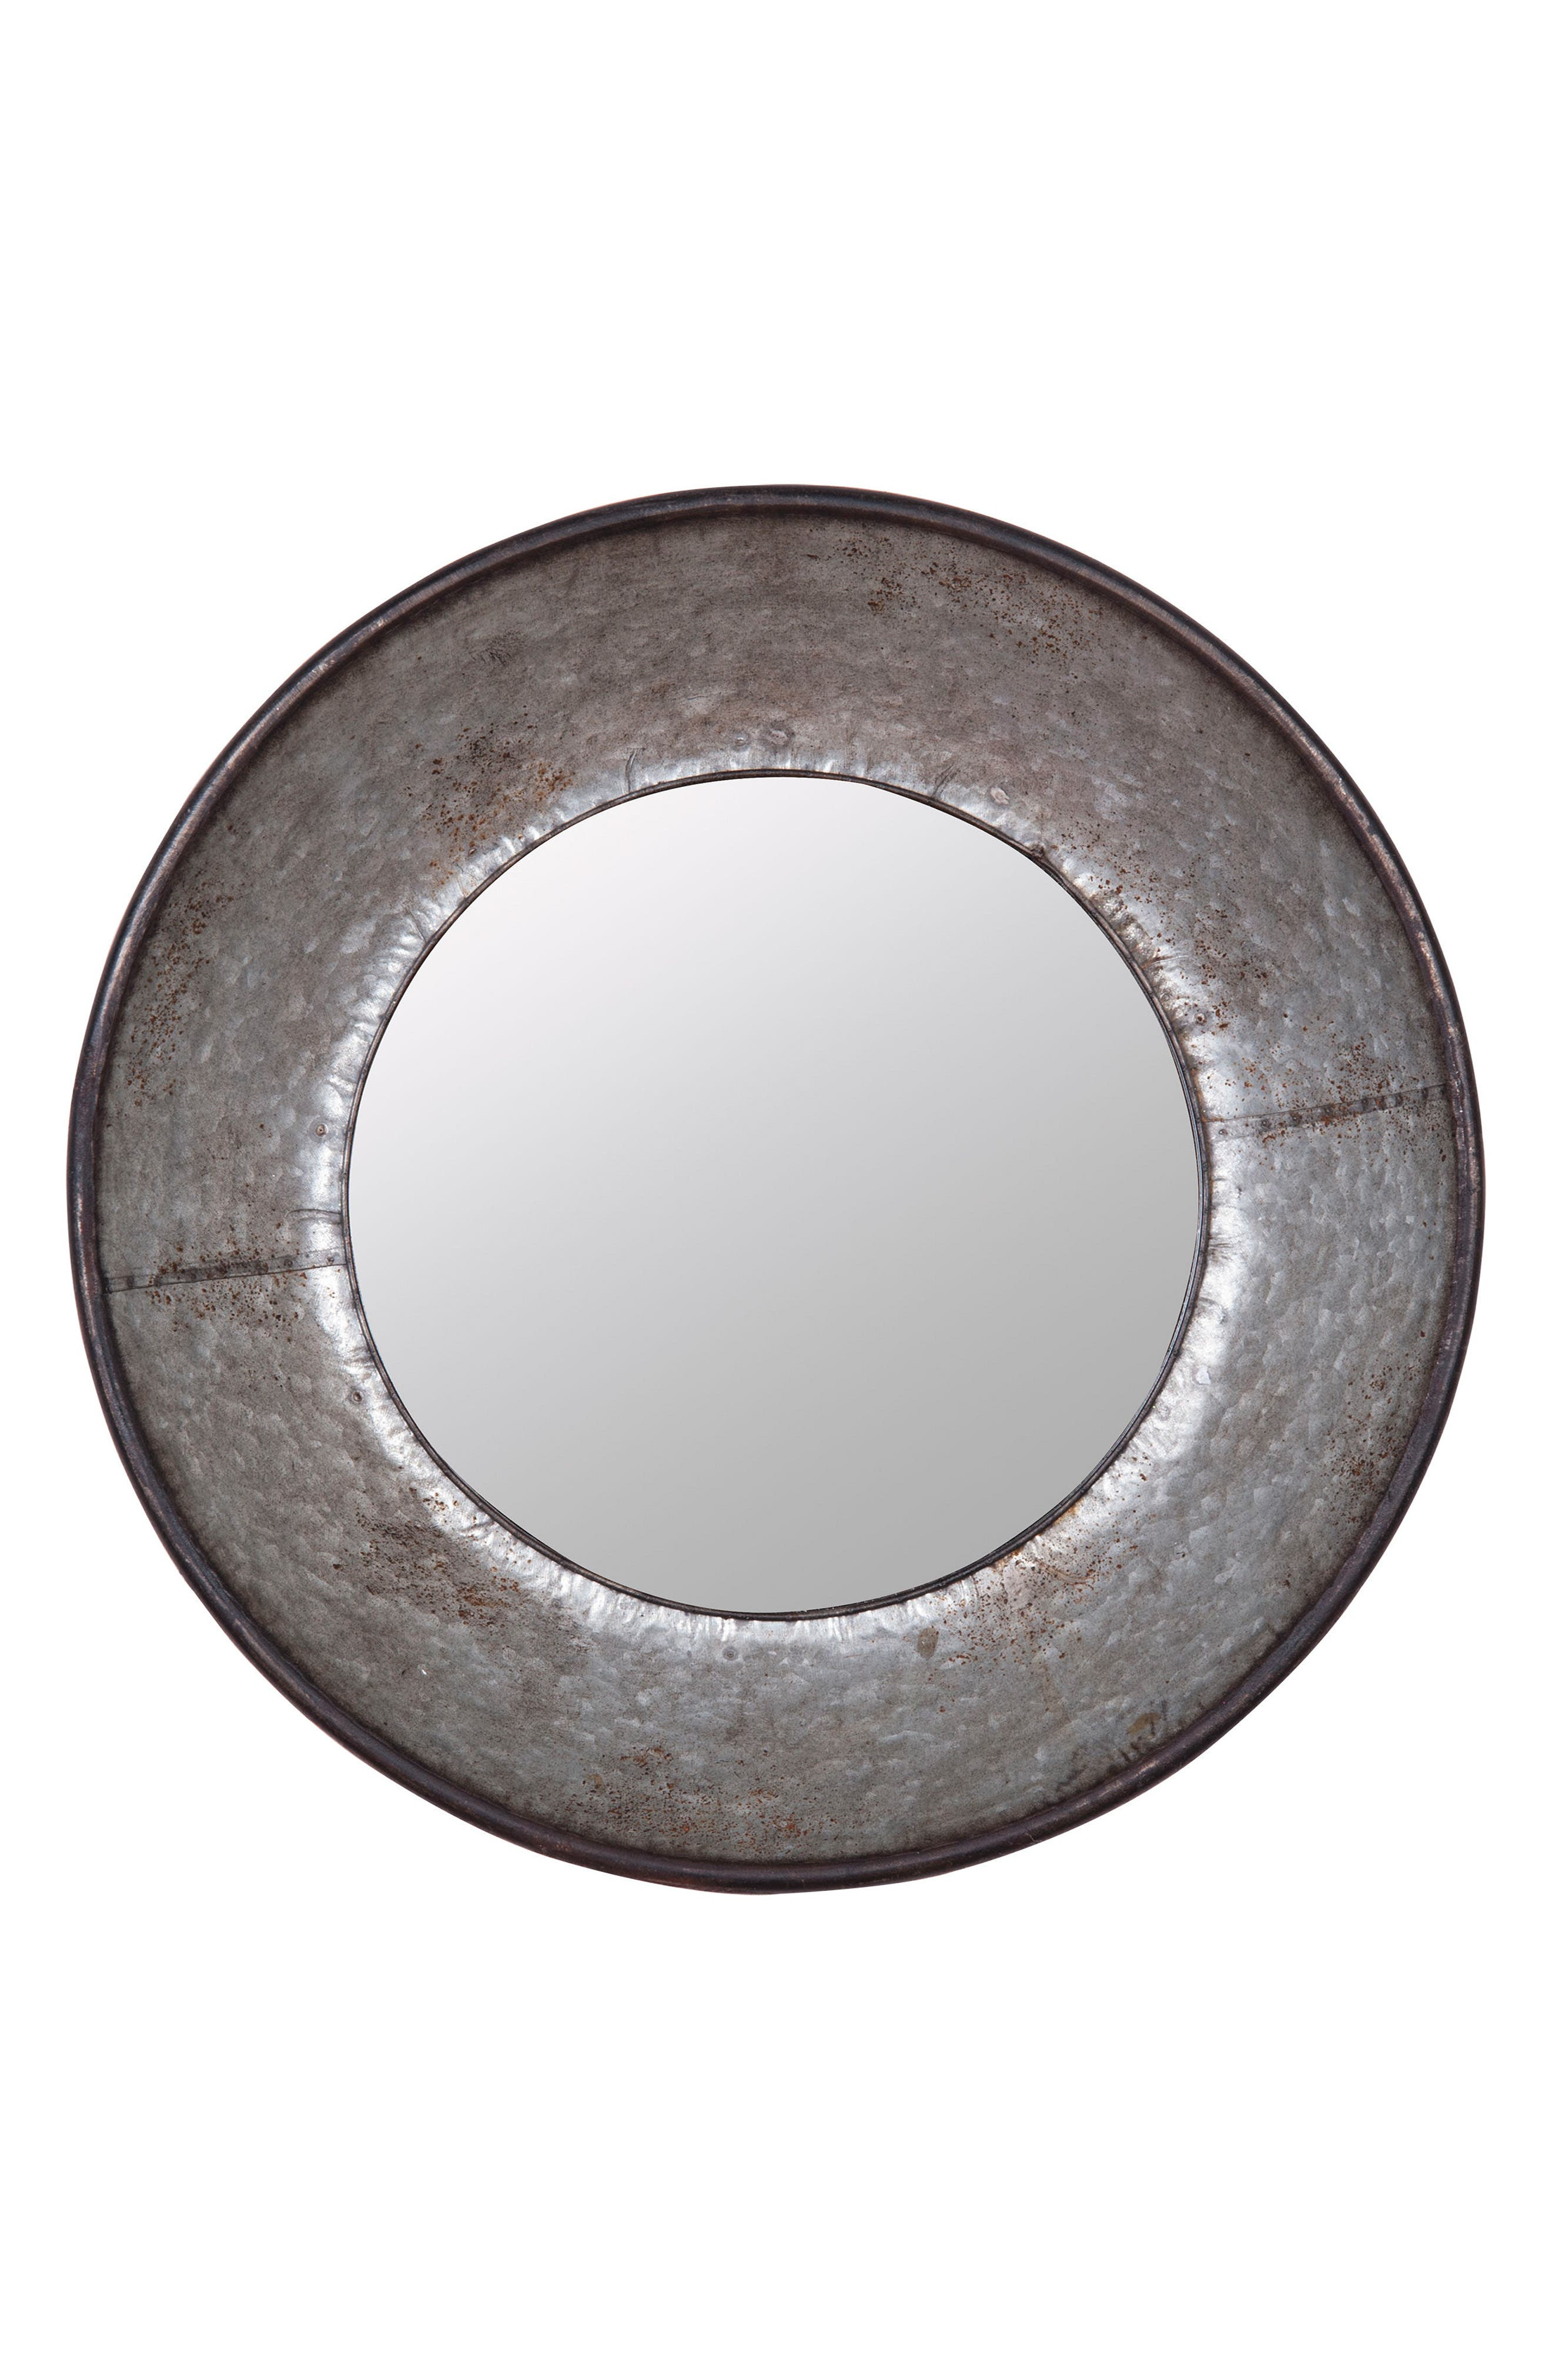 Main Image - Foreside Frisco Round Mirror